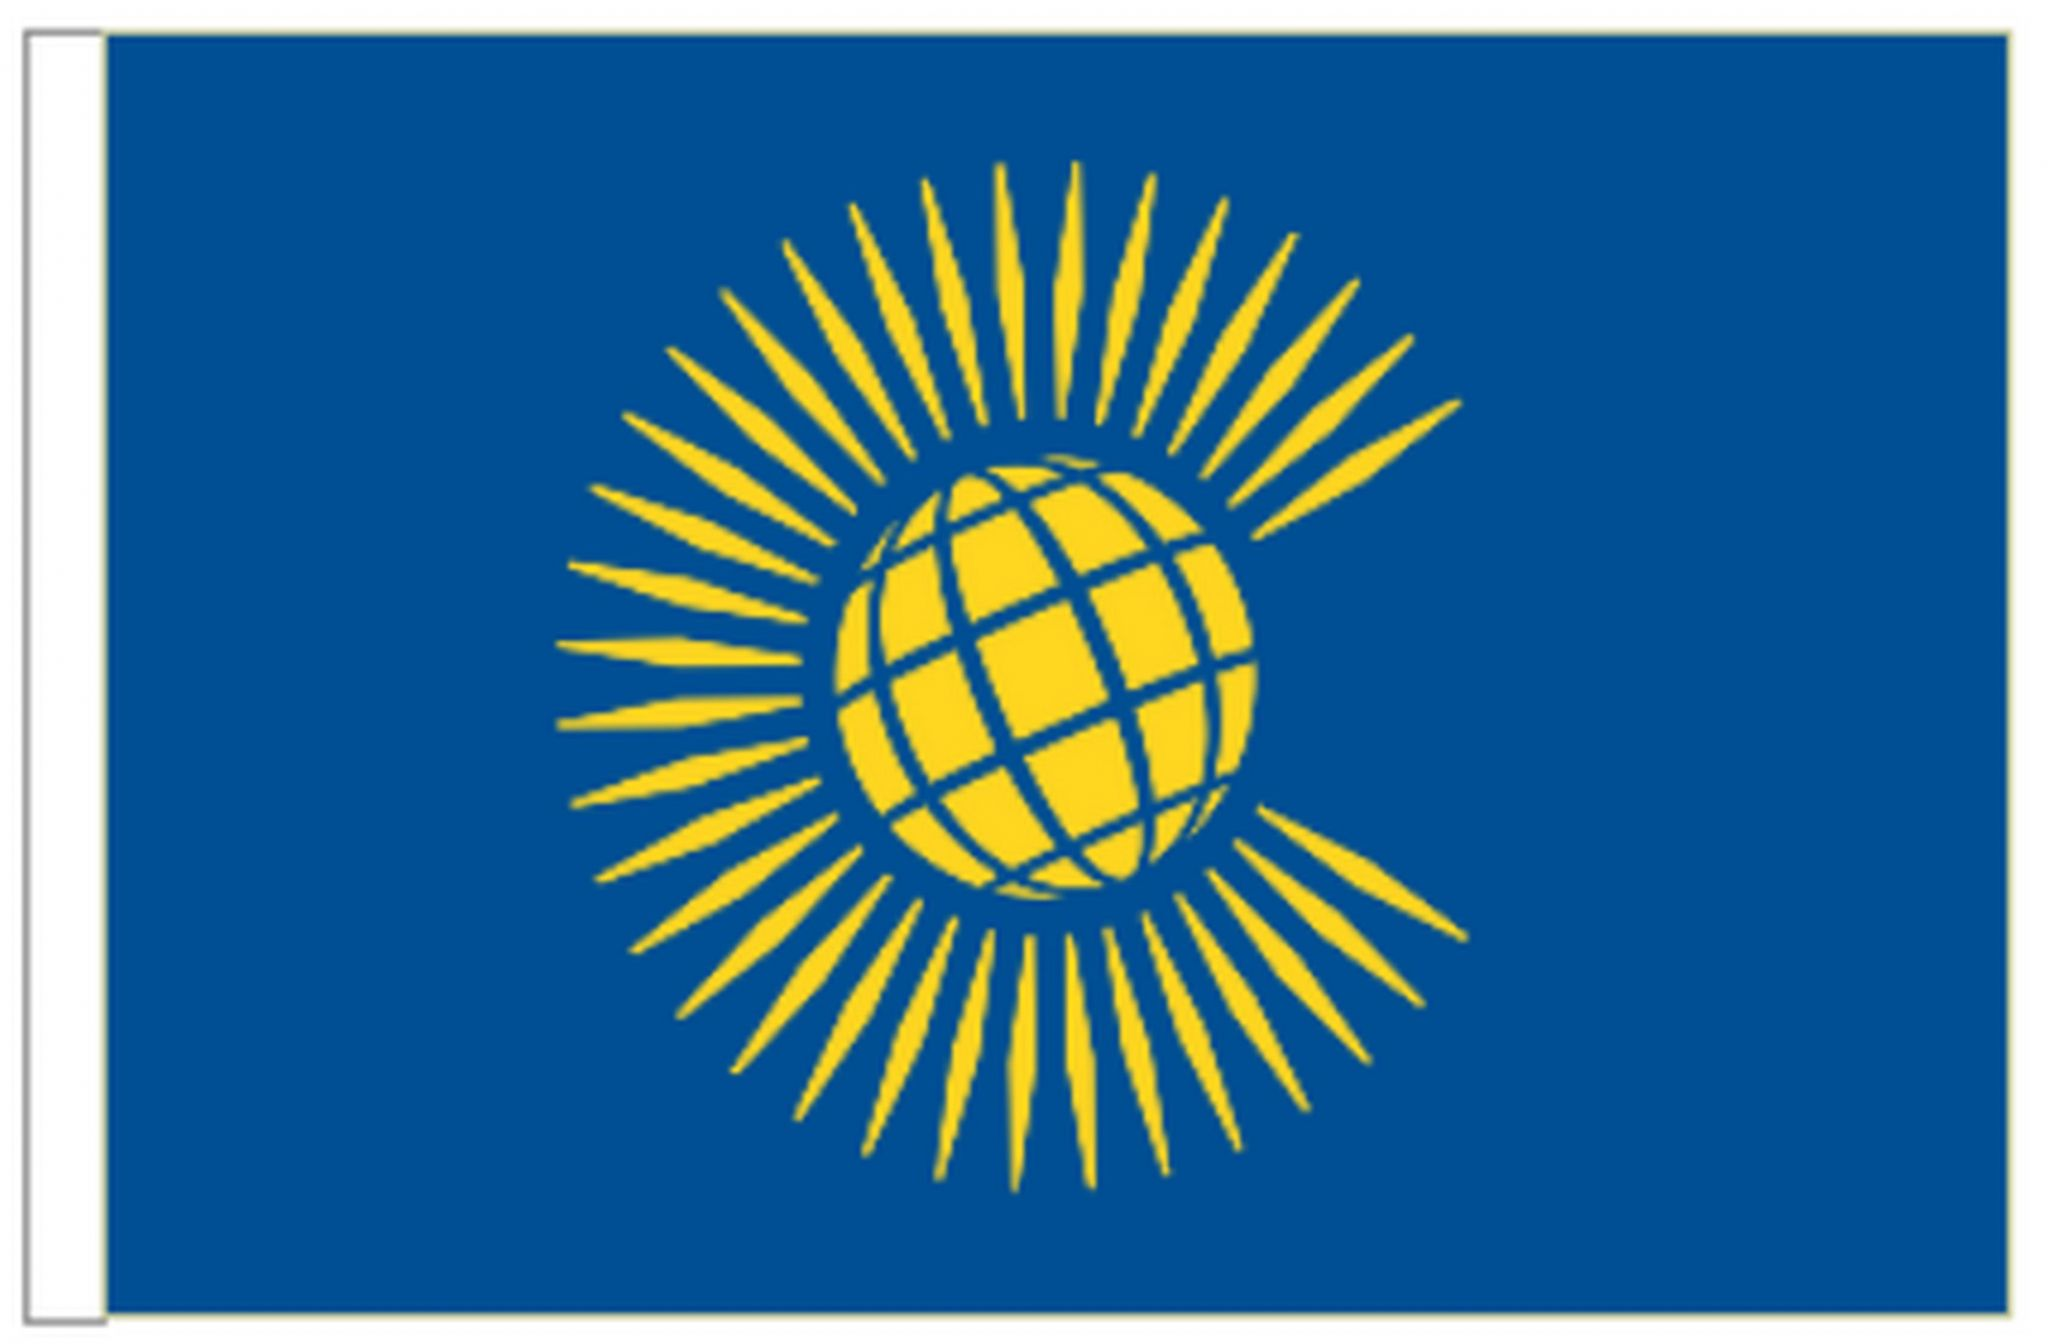 Commonwealth Sleeved Flag suitable for Boats 45cm x 30cm